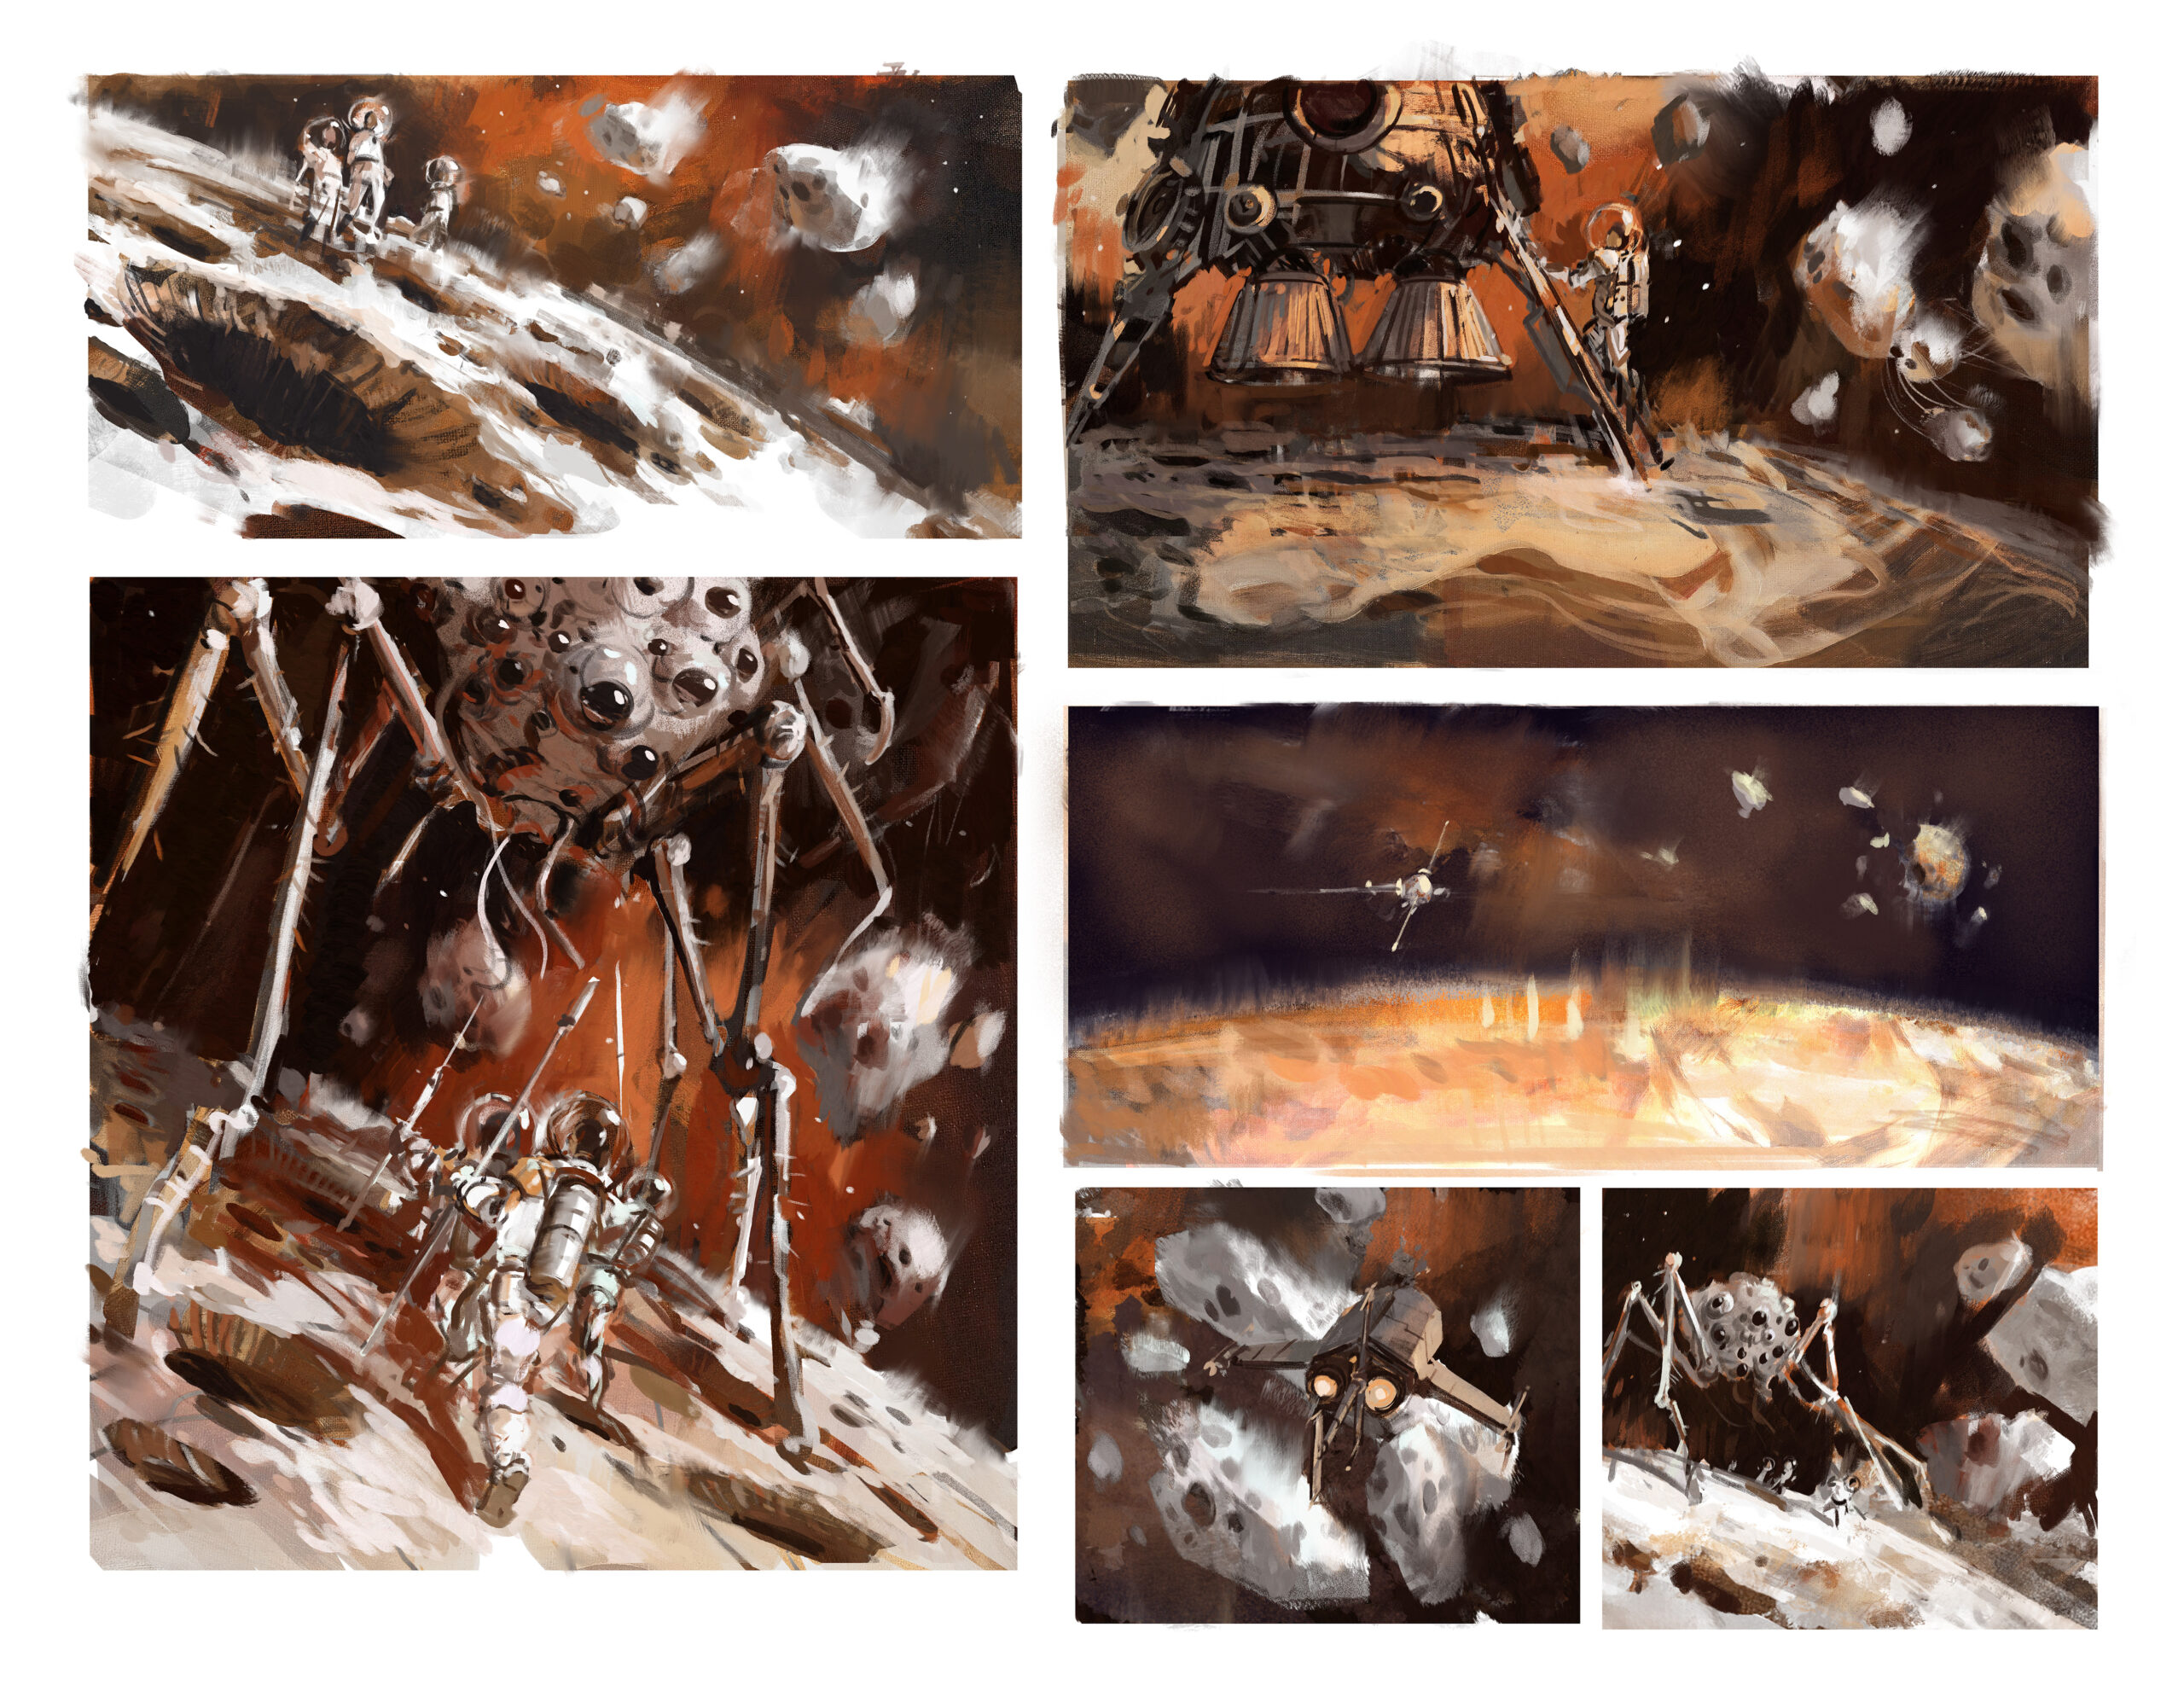 Jared Shear, spiders, space, scifi, asteroids, sketches, thumbnail, science fiction, creature, spideroid, attack, art,